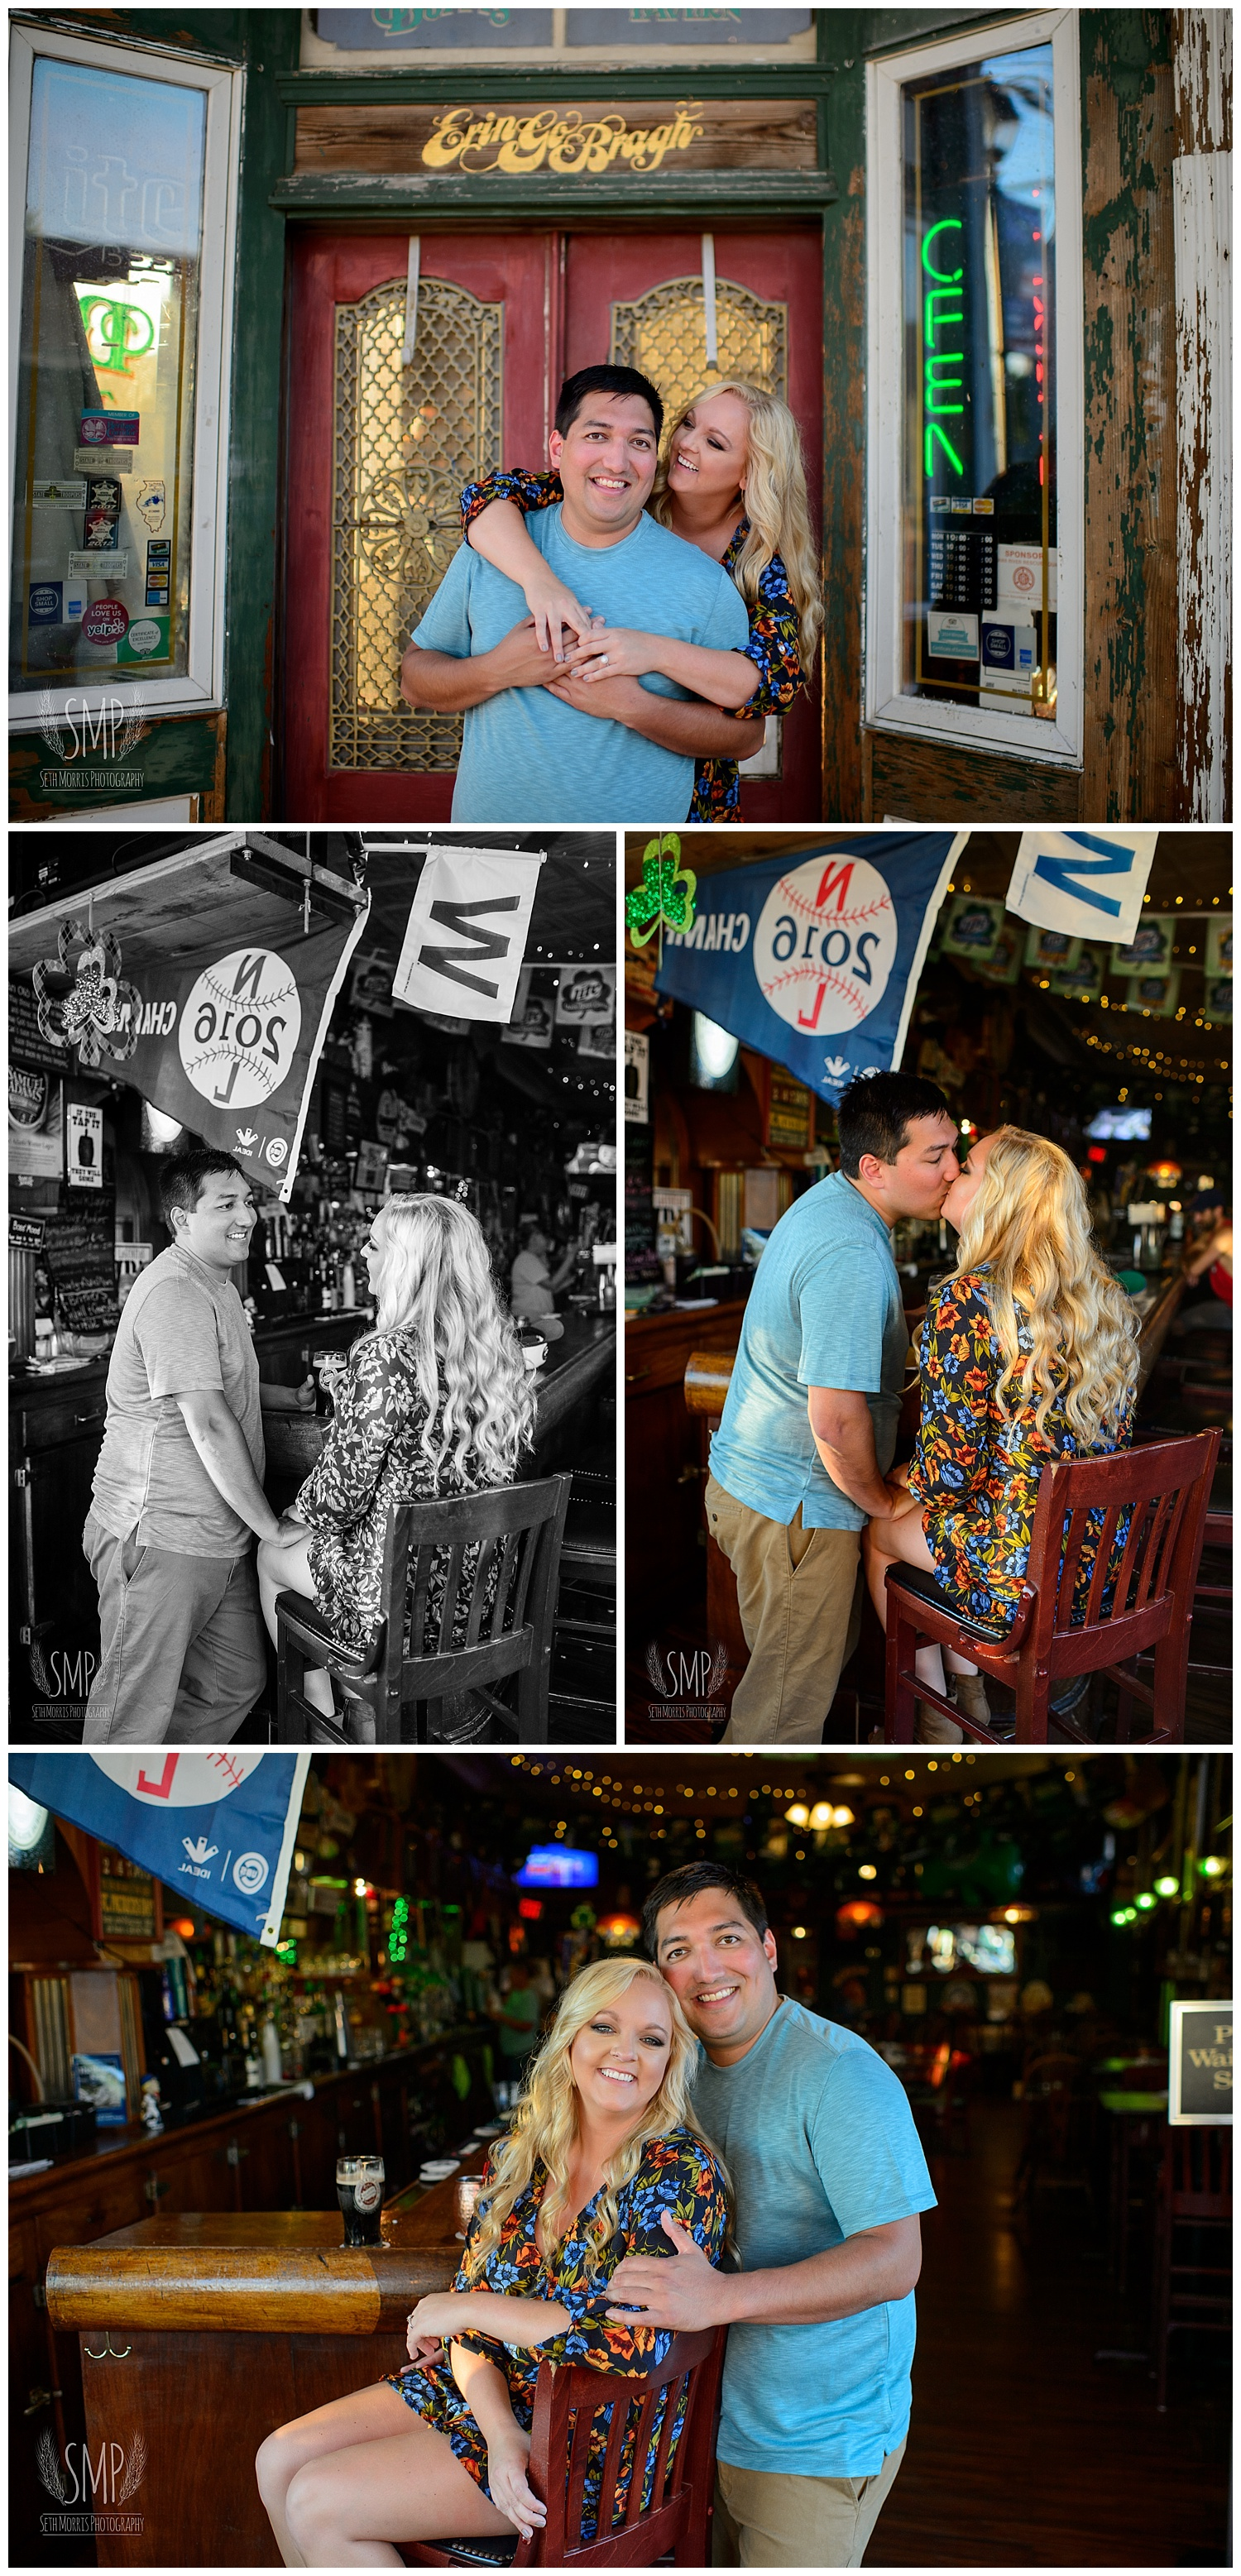 utica-engagement-photographer-downtown-pictures-29.jpg